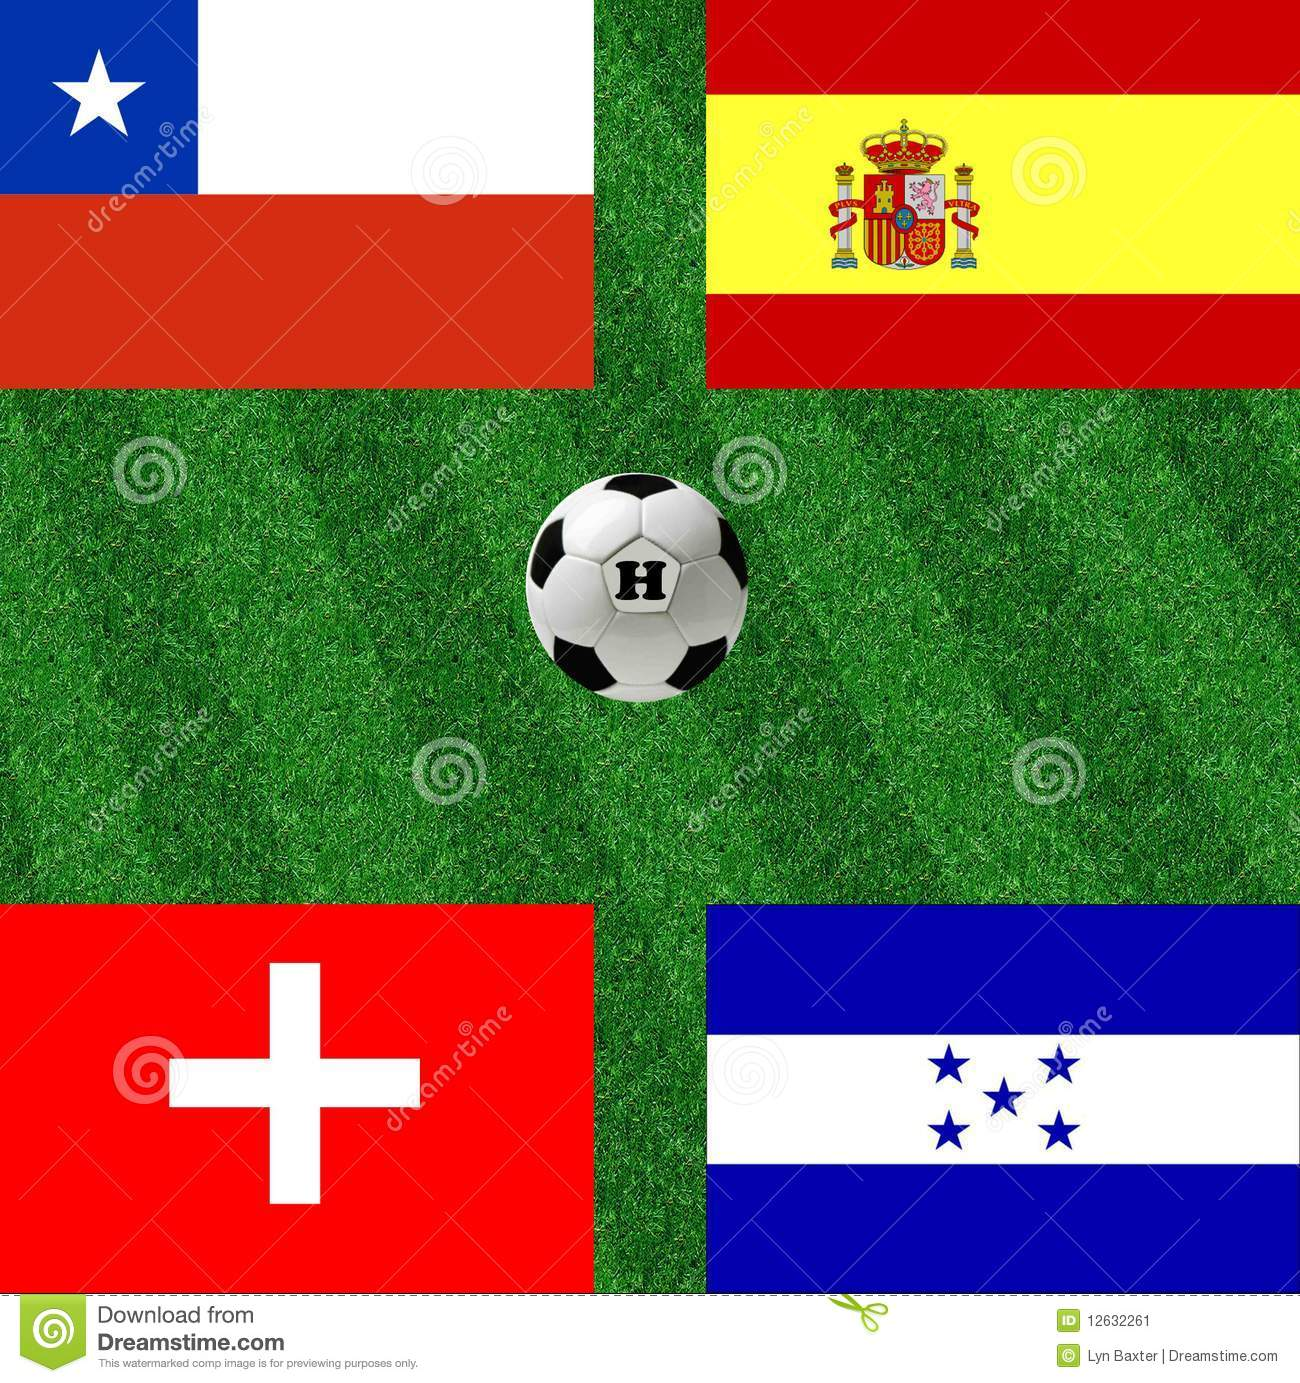 Group H world cup soccer